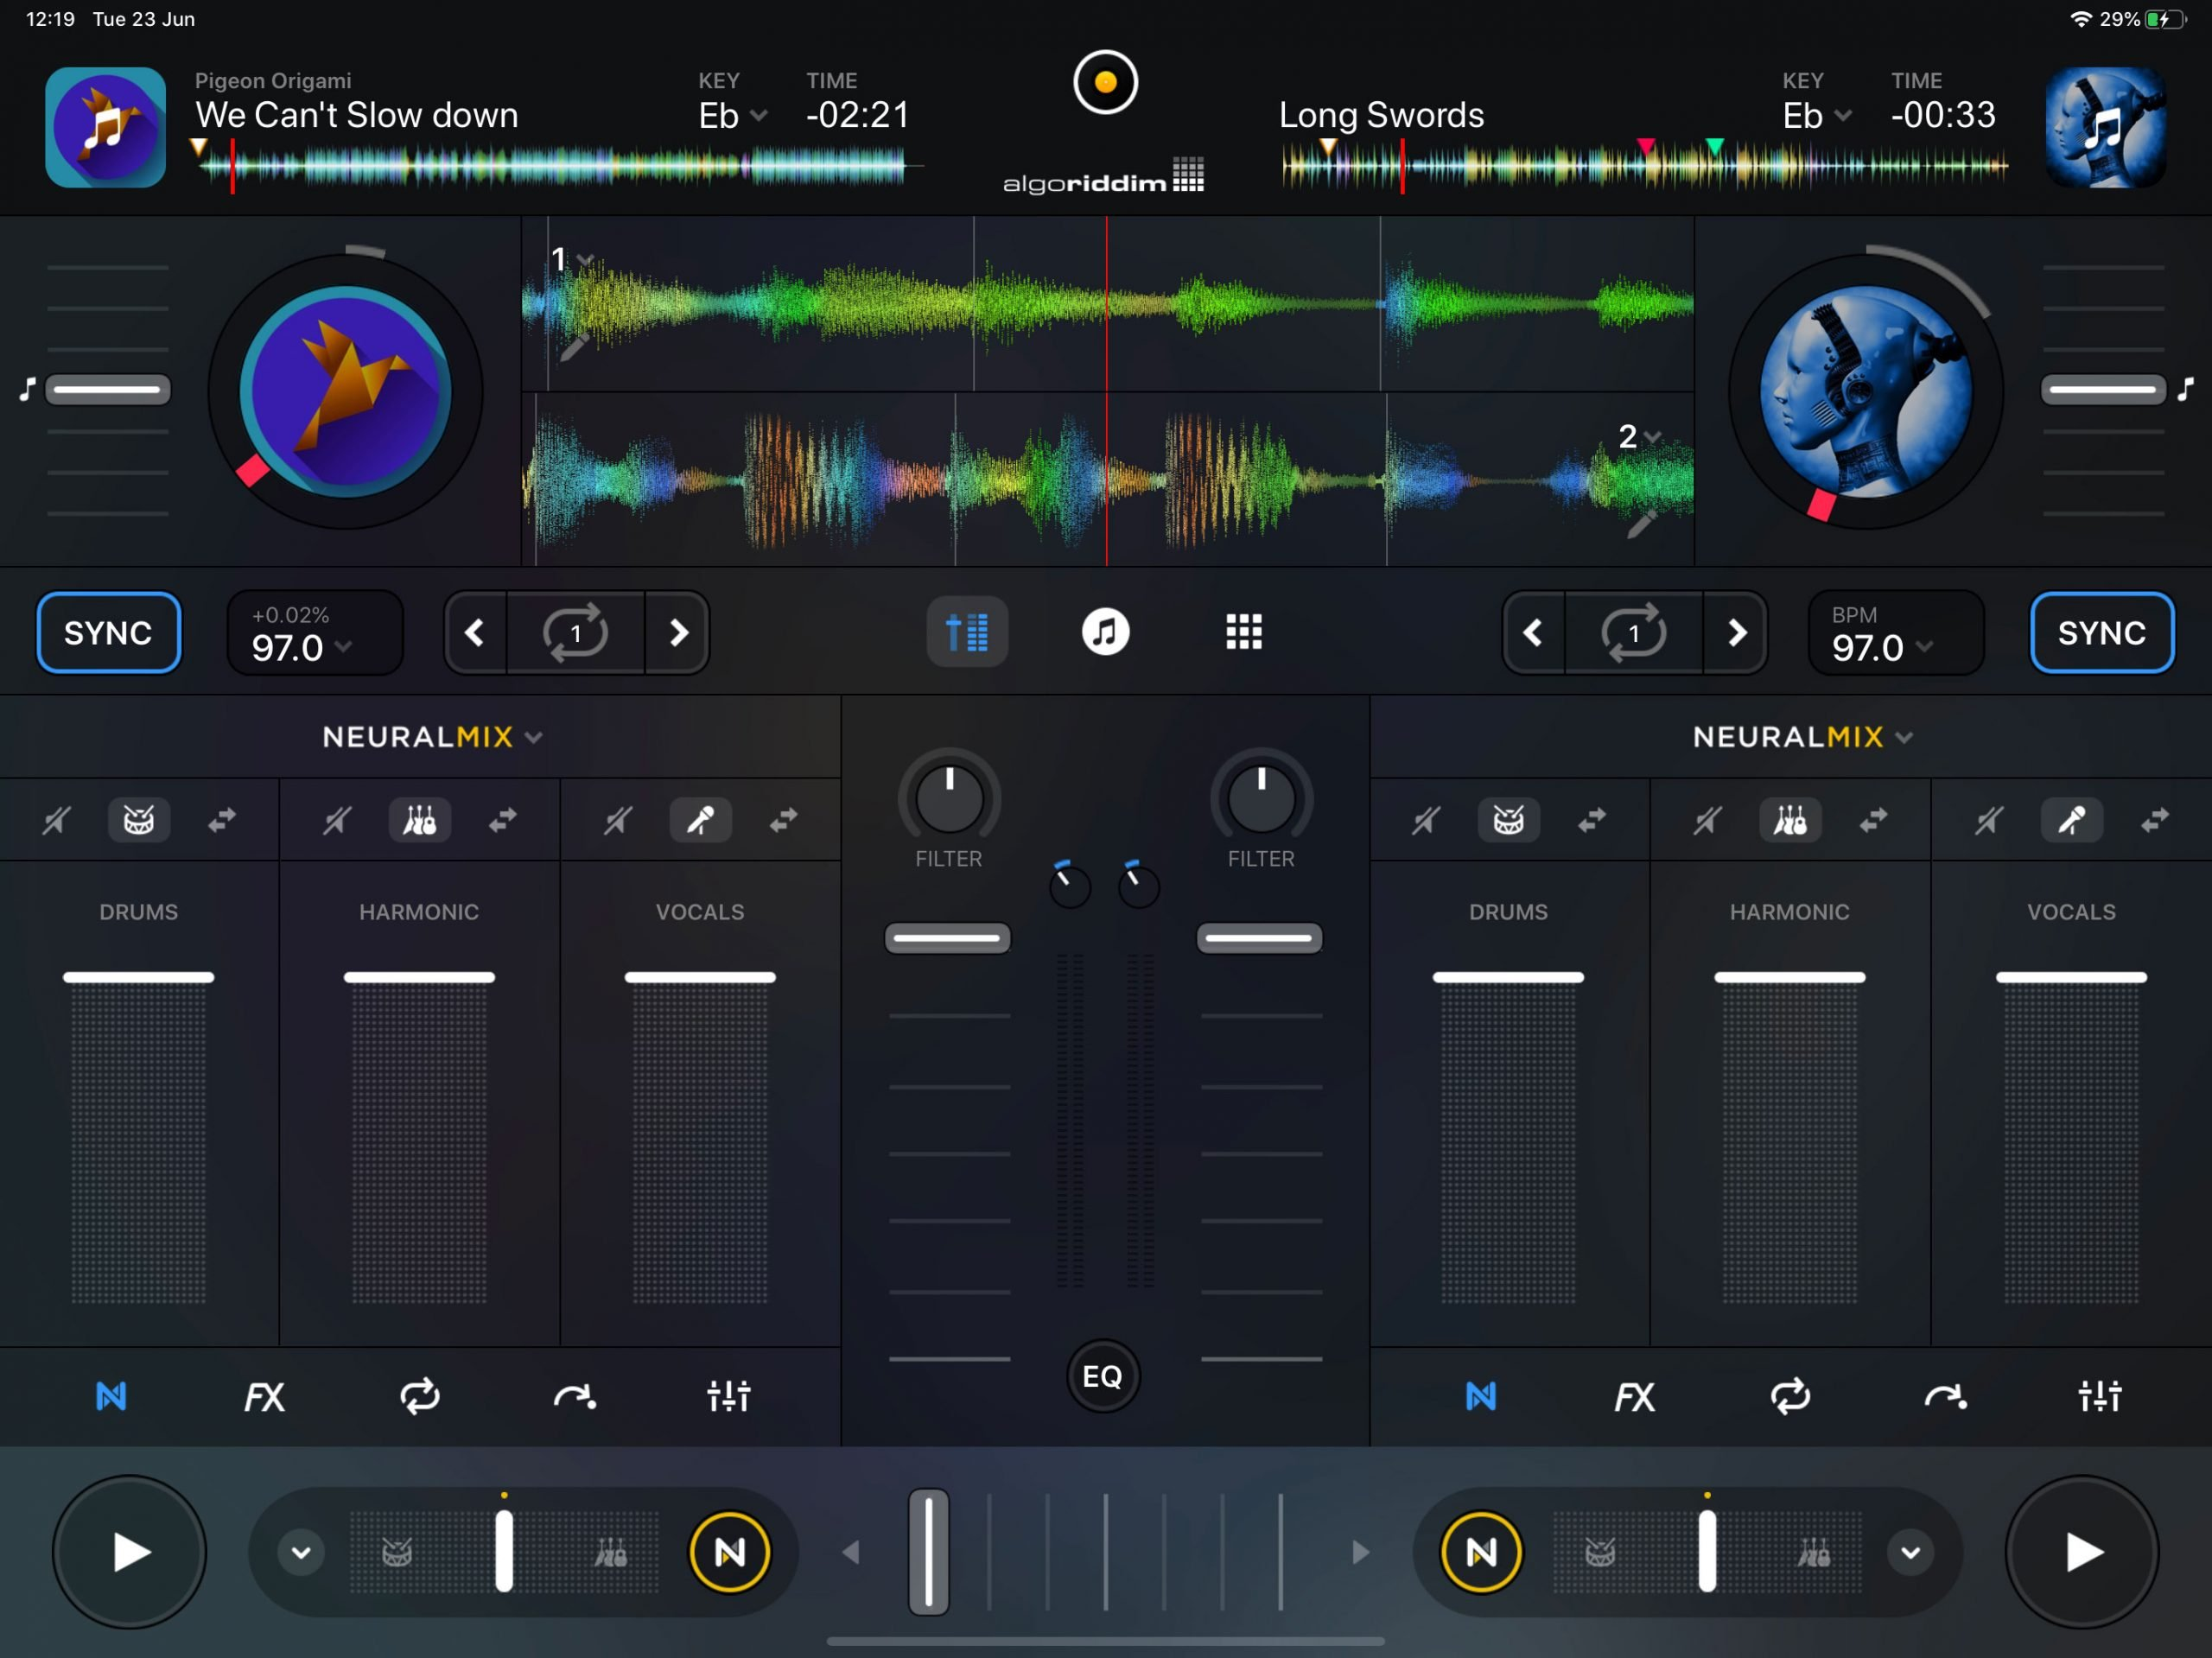 djay Pro AI Neural Mix VirtualDJ 2021 Spleeter stems audio source separation (1)